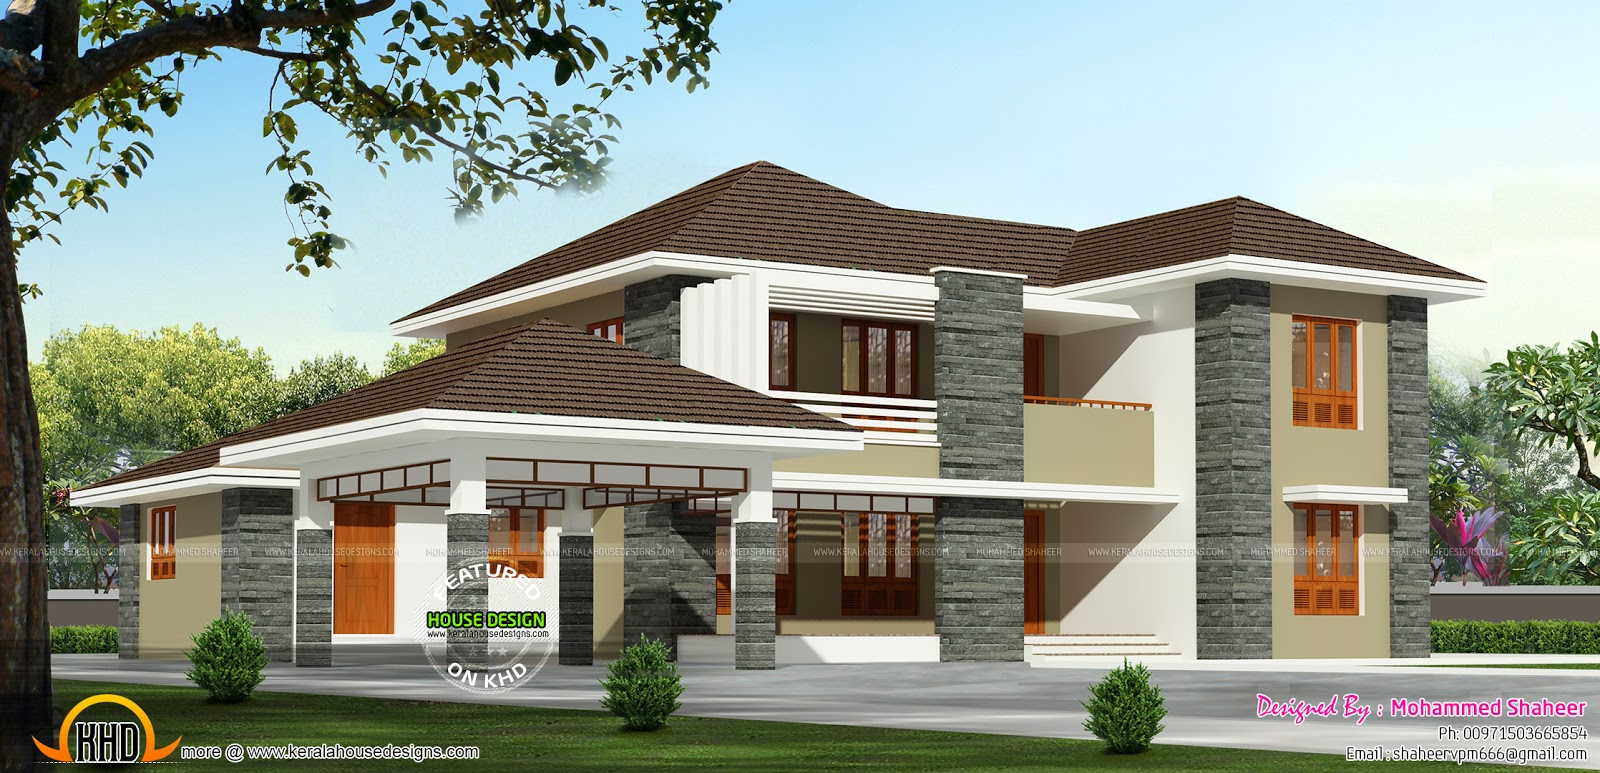 2000 square foot house kerala home design and floor plans for House floor plans 2000 square feet